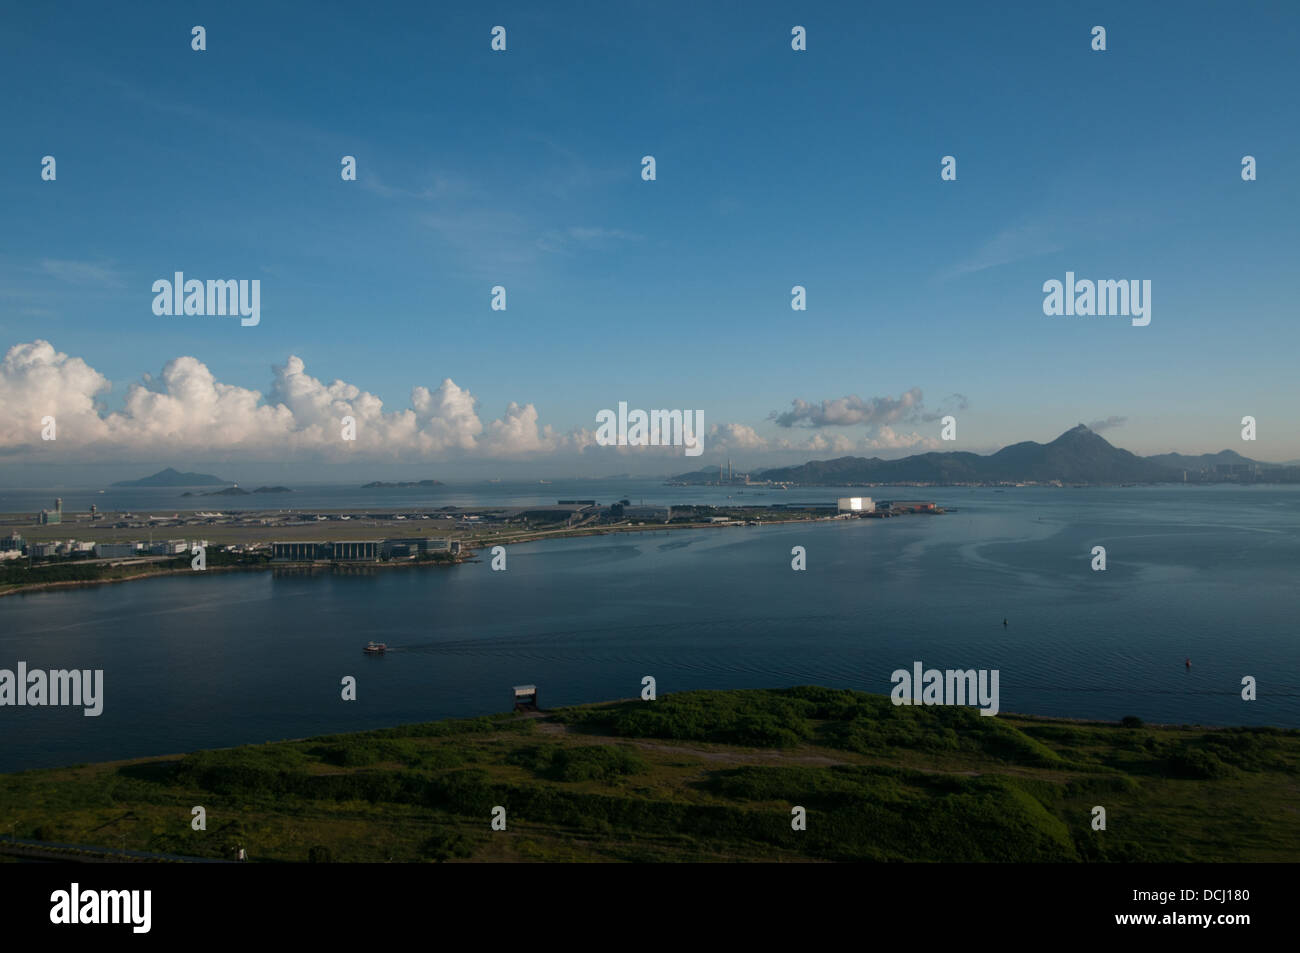 Hong Kong Chek Lap Kok airport  - designed by Norman Foster - seen from Lantau island. - Stock Image